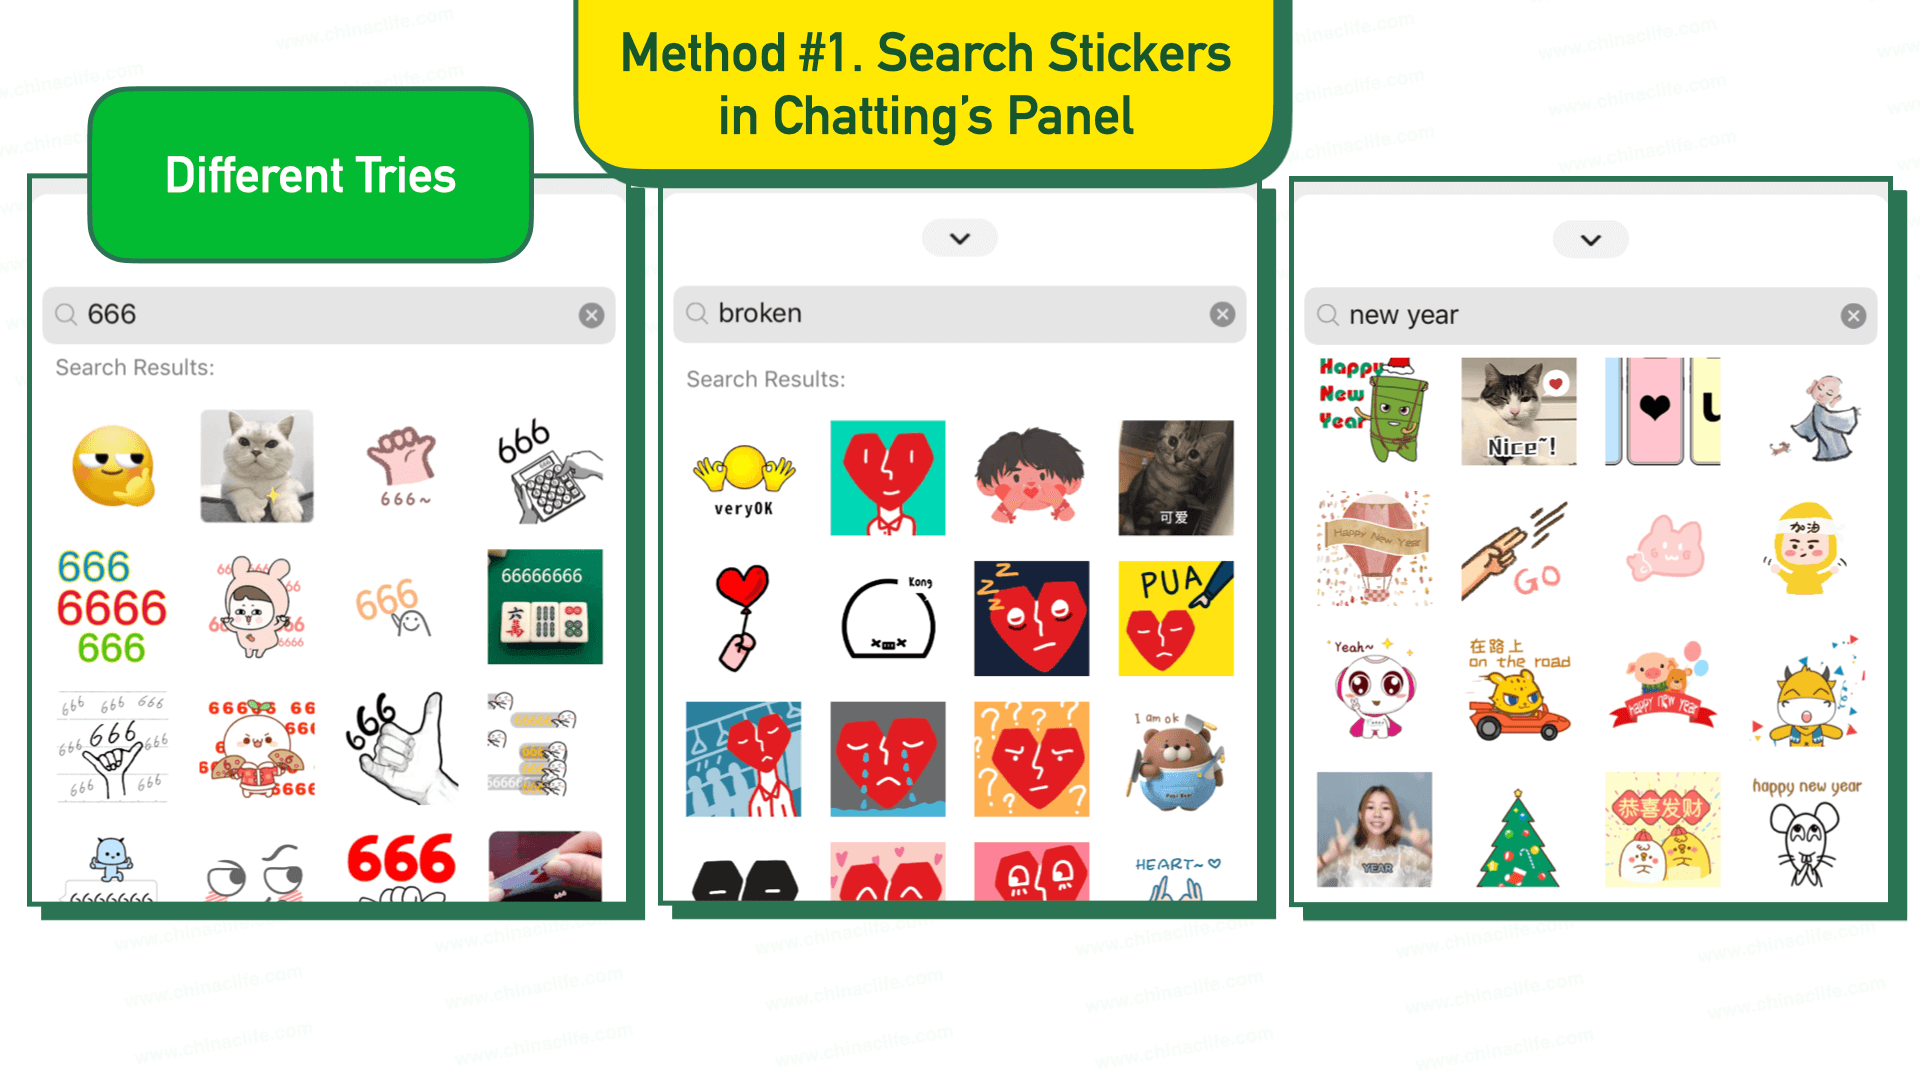 Method #1 Search Stickers in WeChat's Chatting, How to Find Chinese Memes by Searching Stickers in WeChat